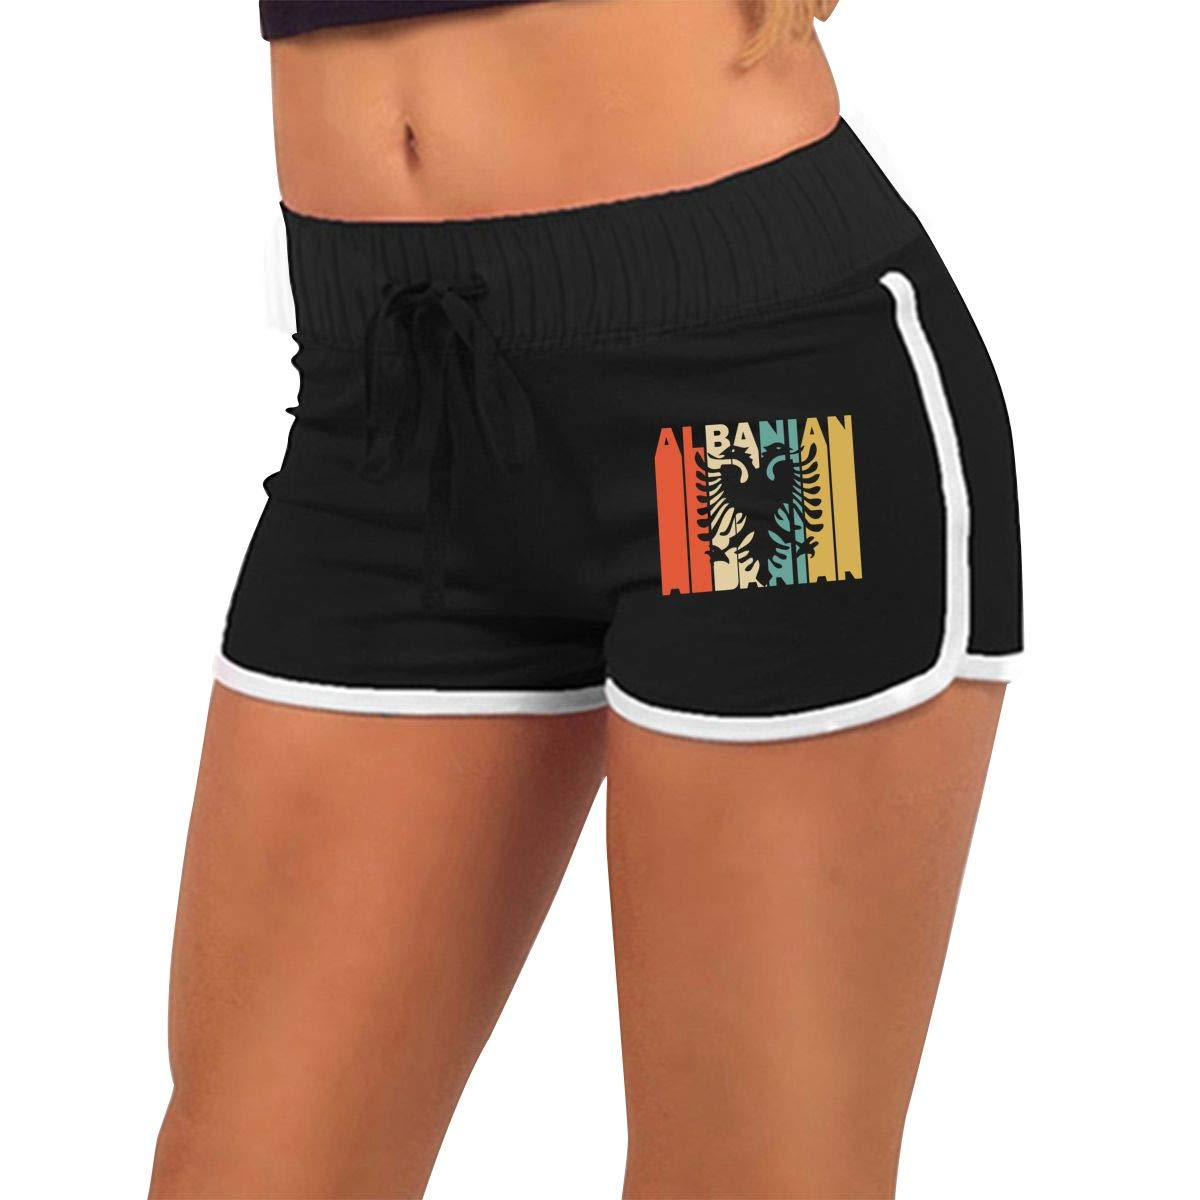 Low Waist Retro Style Albanian Silhouette Shorts Womens Casual Gym Shorts